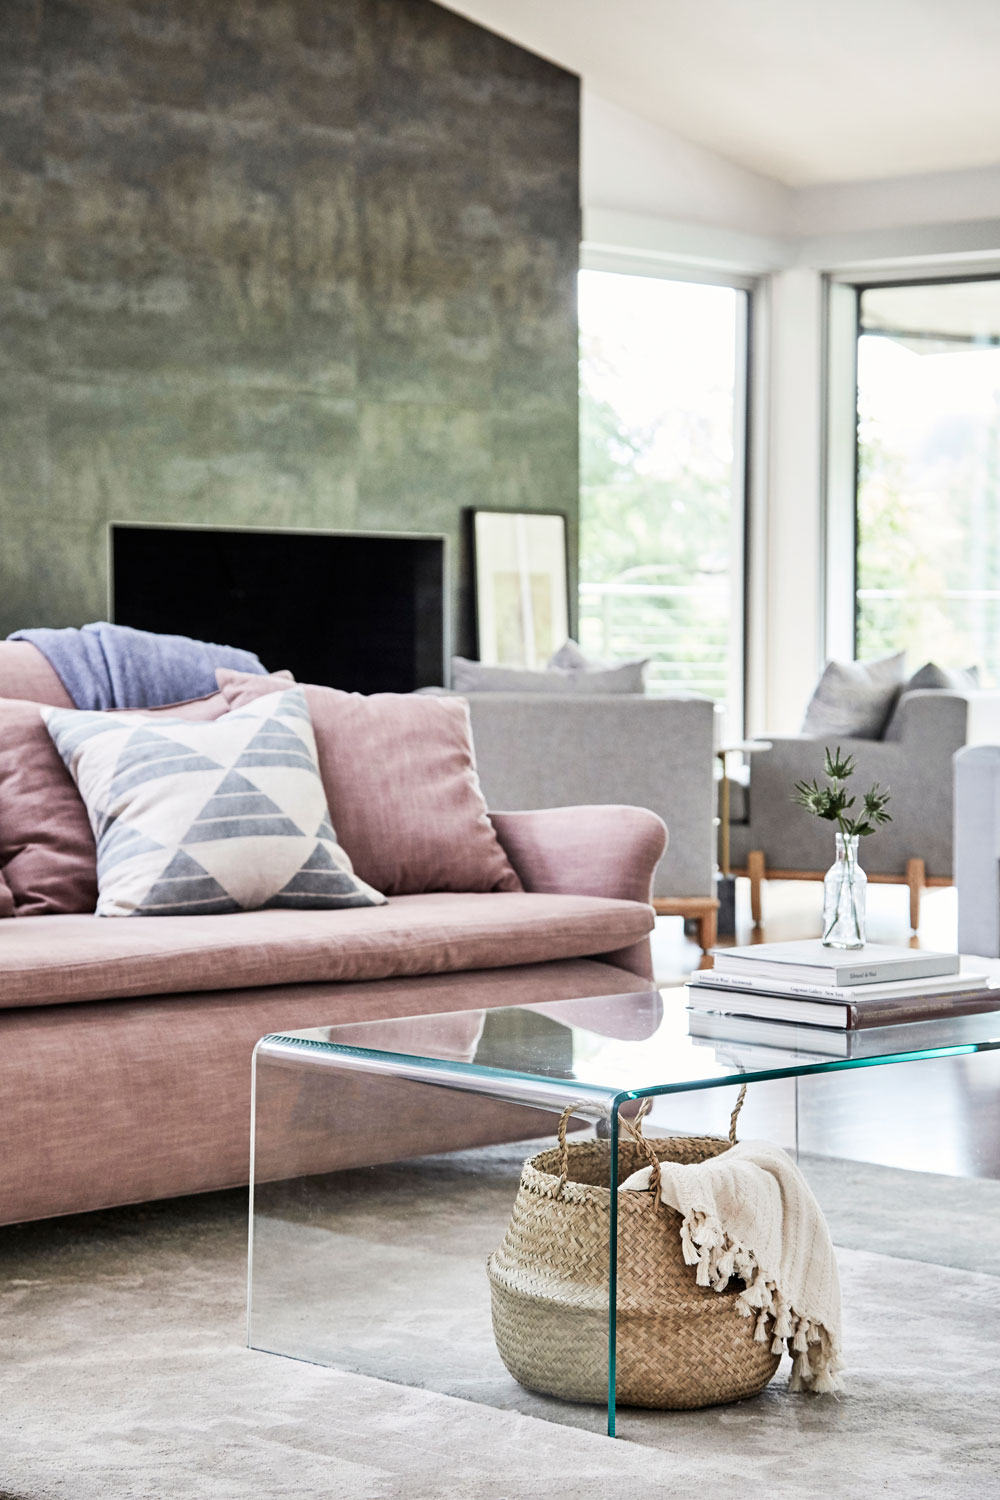 This sophisticated pink creates a lovely warmth against all the blues, grays, and greens in the rest of the room.